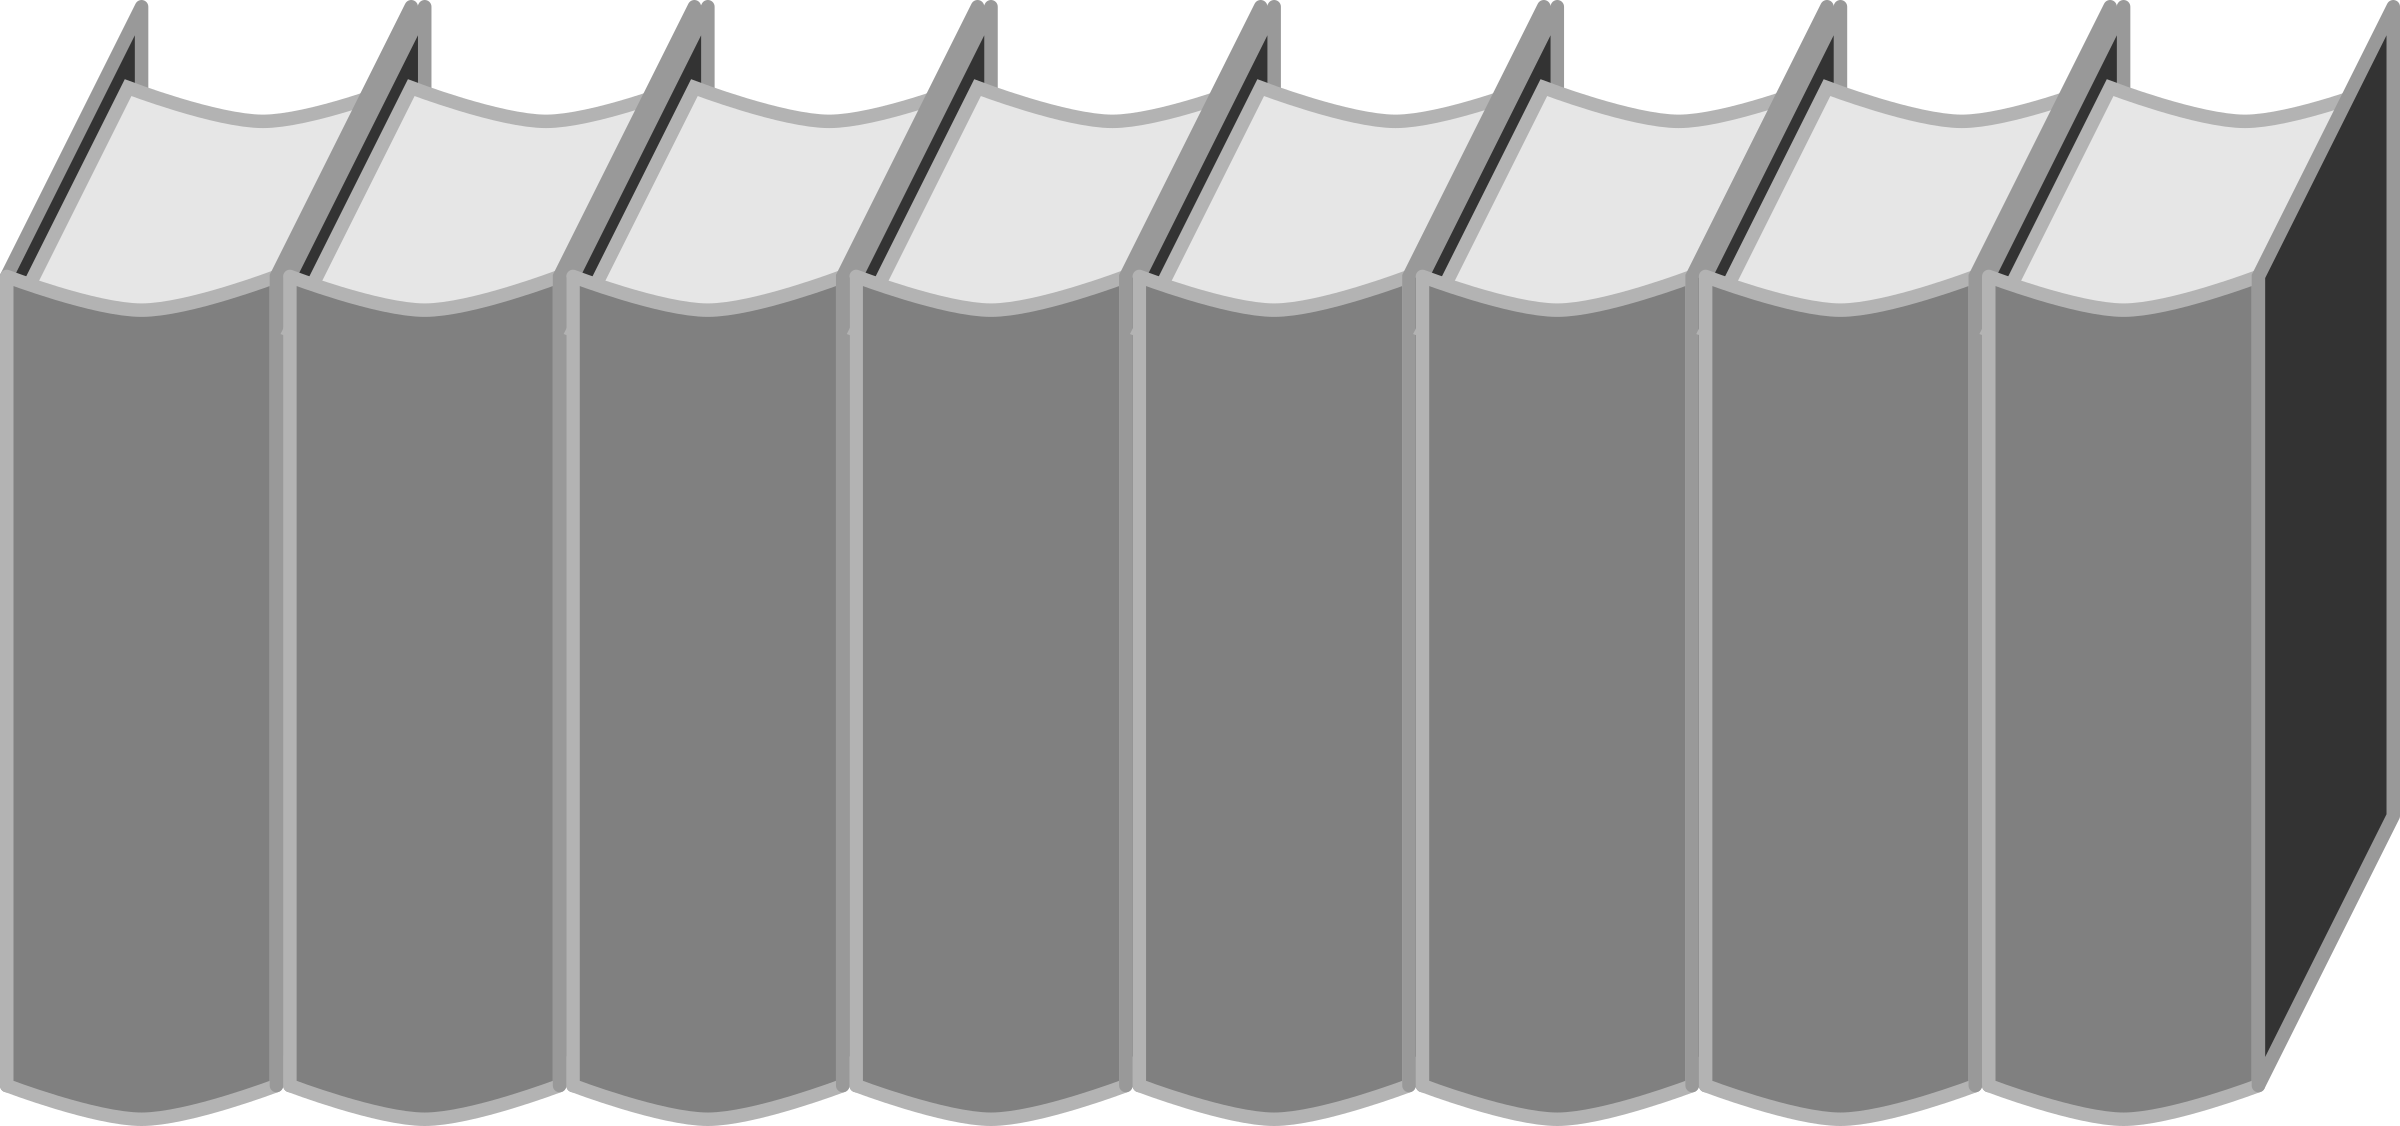 Clipart - Row of books